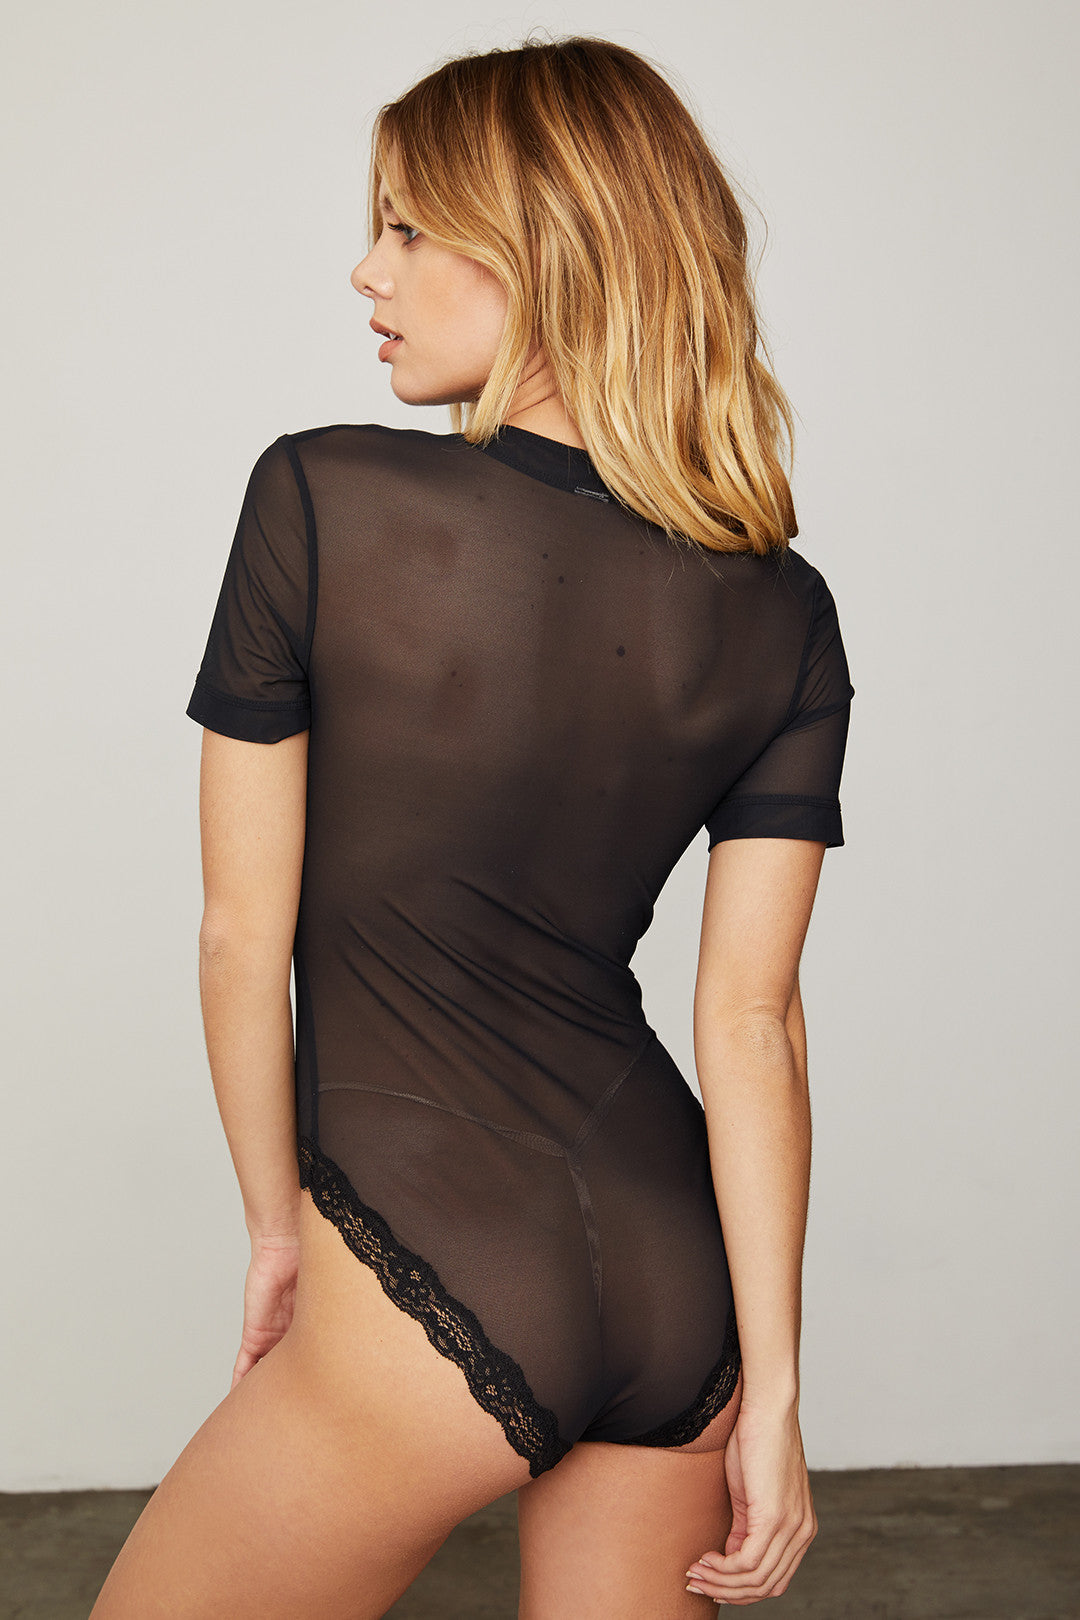 BODY GLOVE BODYSUIT